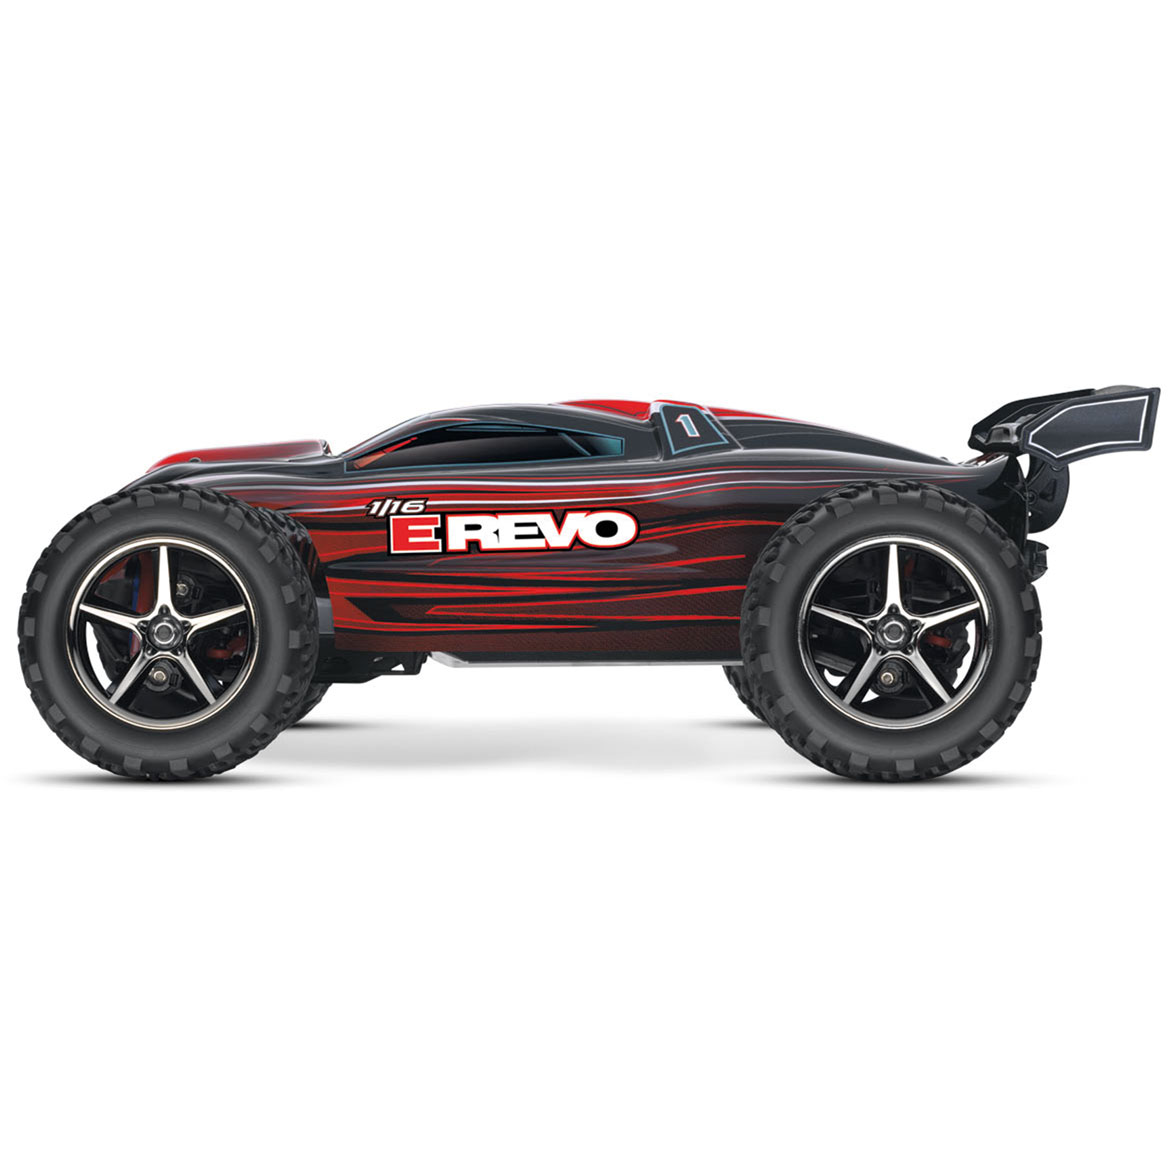 TRAXXAS E Revo RTR Brushed 12V Lader A181878 furthermore Vkar V3 Masc4x4 Waterproof 4wd Off Road High Speed Electronics Remote Control Short Course Truck 1 10 Scale Rc Racing Cars besides Electric Motor Used In Power Plants additionally Product php idx   2941  locale   225  BLH7539 Blade MQX 4 1 Control Unit Mounting Frame likewise Vkar V3 Masc4x4 Waterproof 4wd Off Road High Speed Electronics Remote Control Short Course Truck 1 10 Scale Rc Racing Cars. on brushed vs brushless rc cars